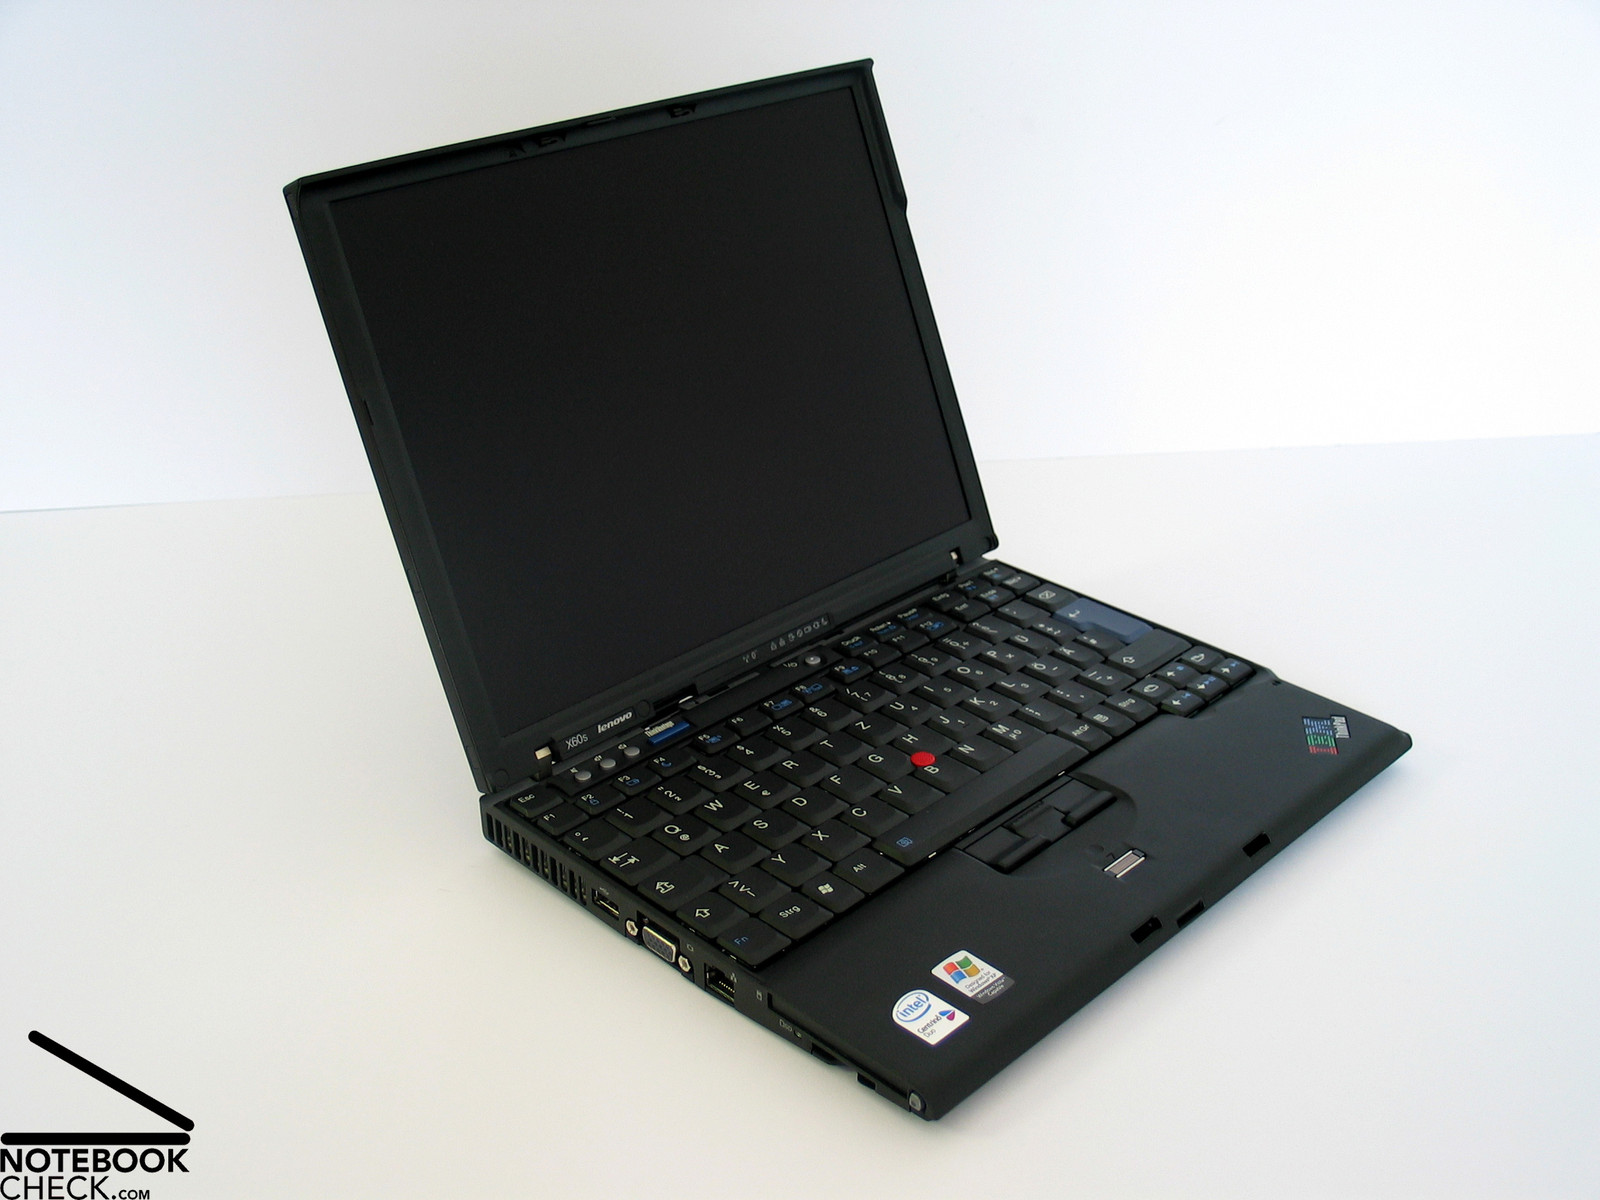 Lenovo Thinkpad X60s Notebookcheck Net External Reviews